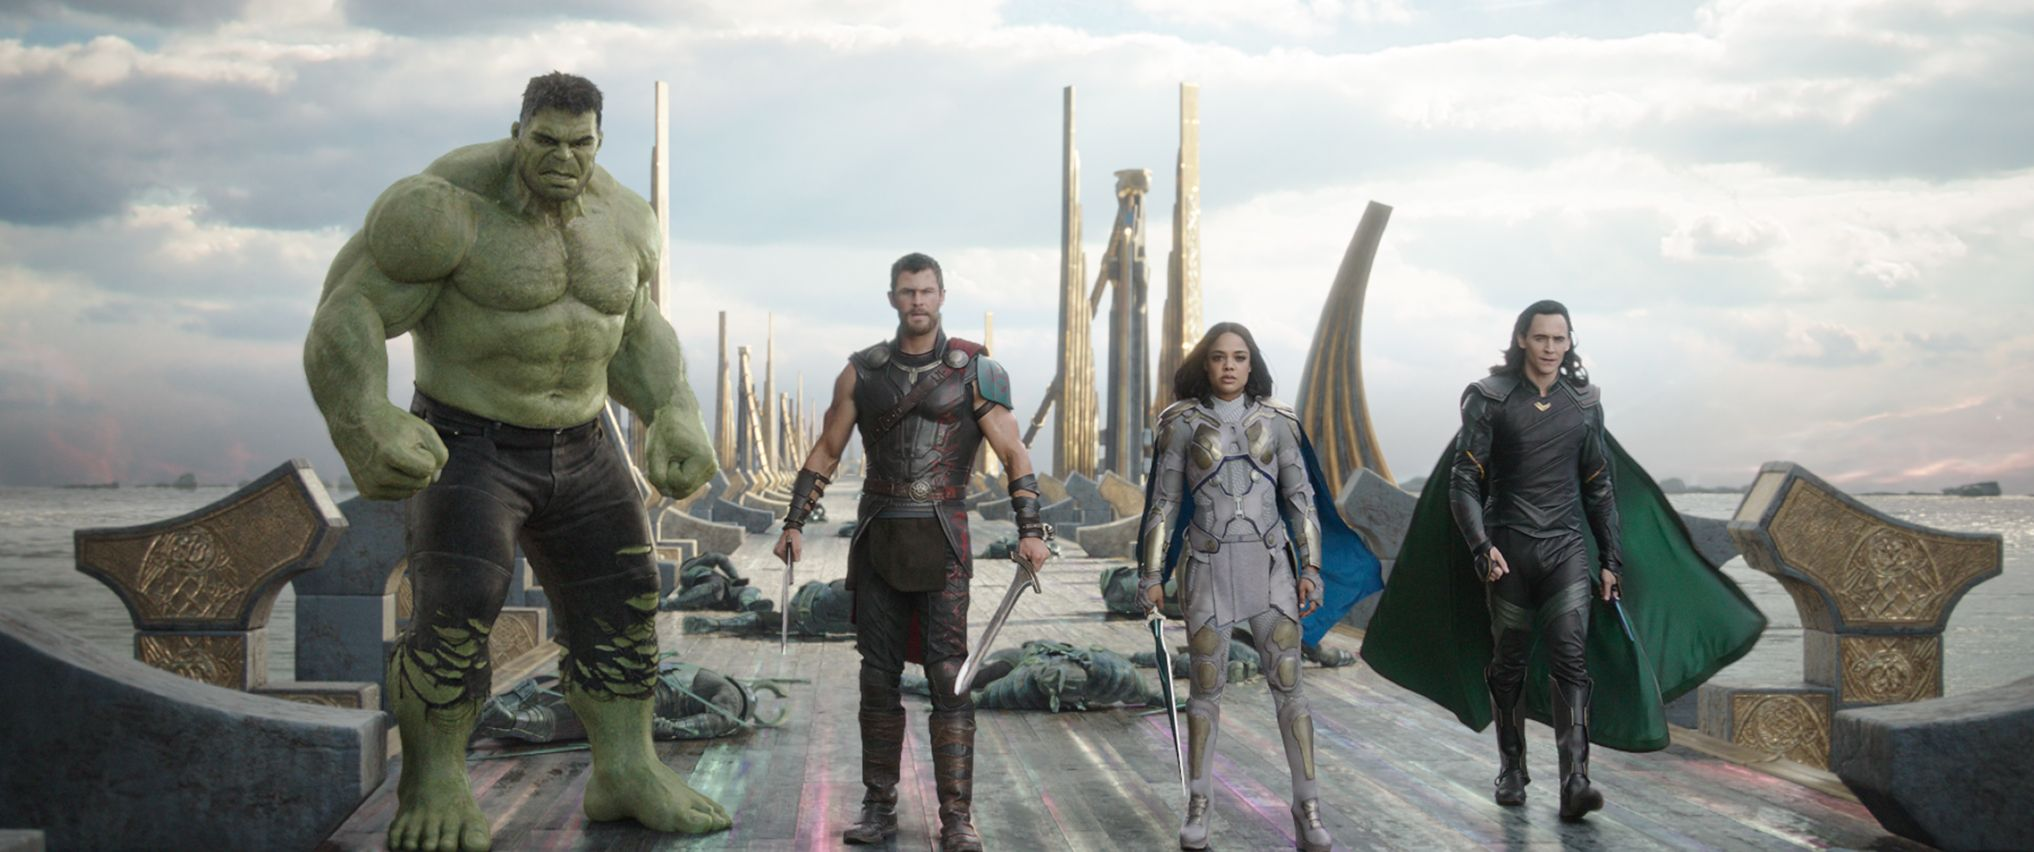 Thor Ragnarok International Trailer Features A Marvel